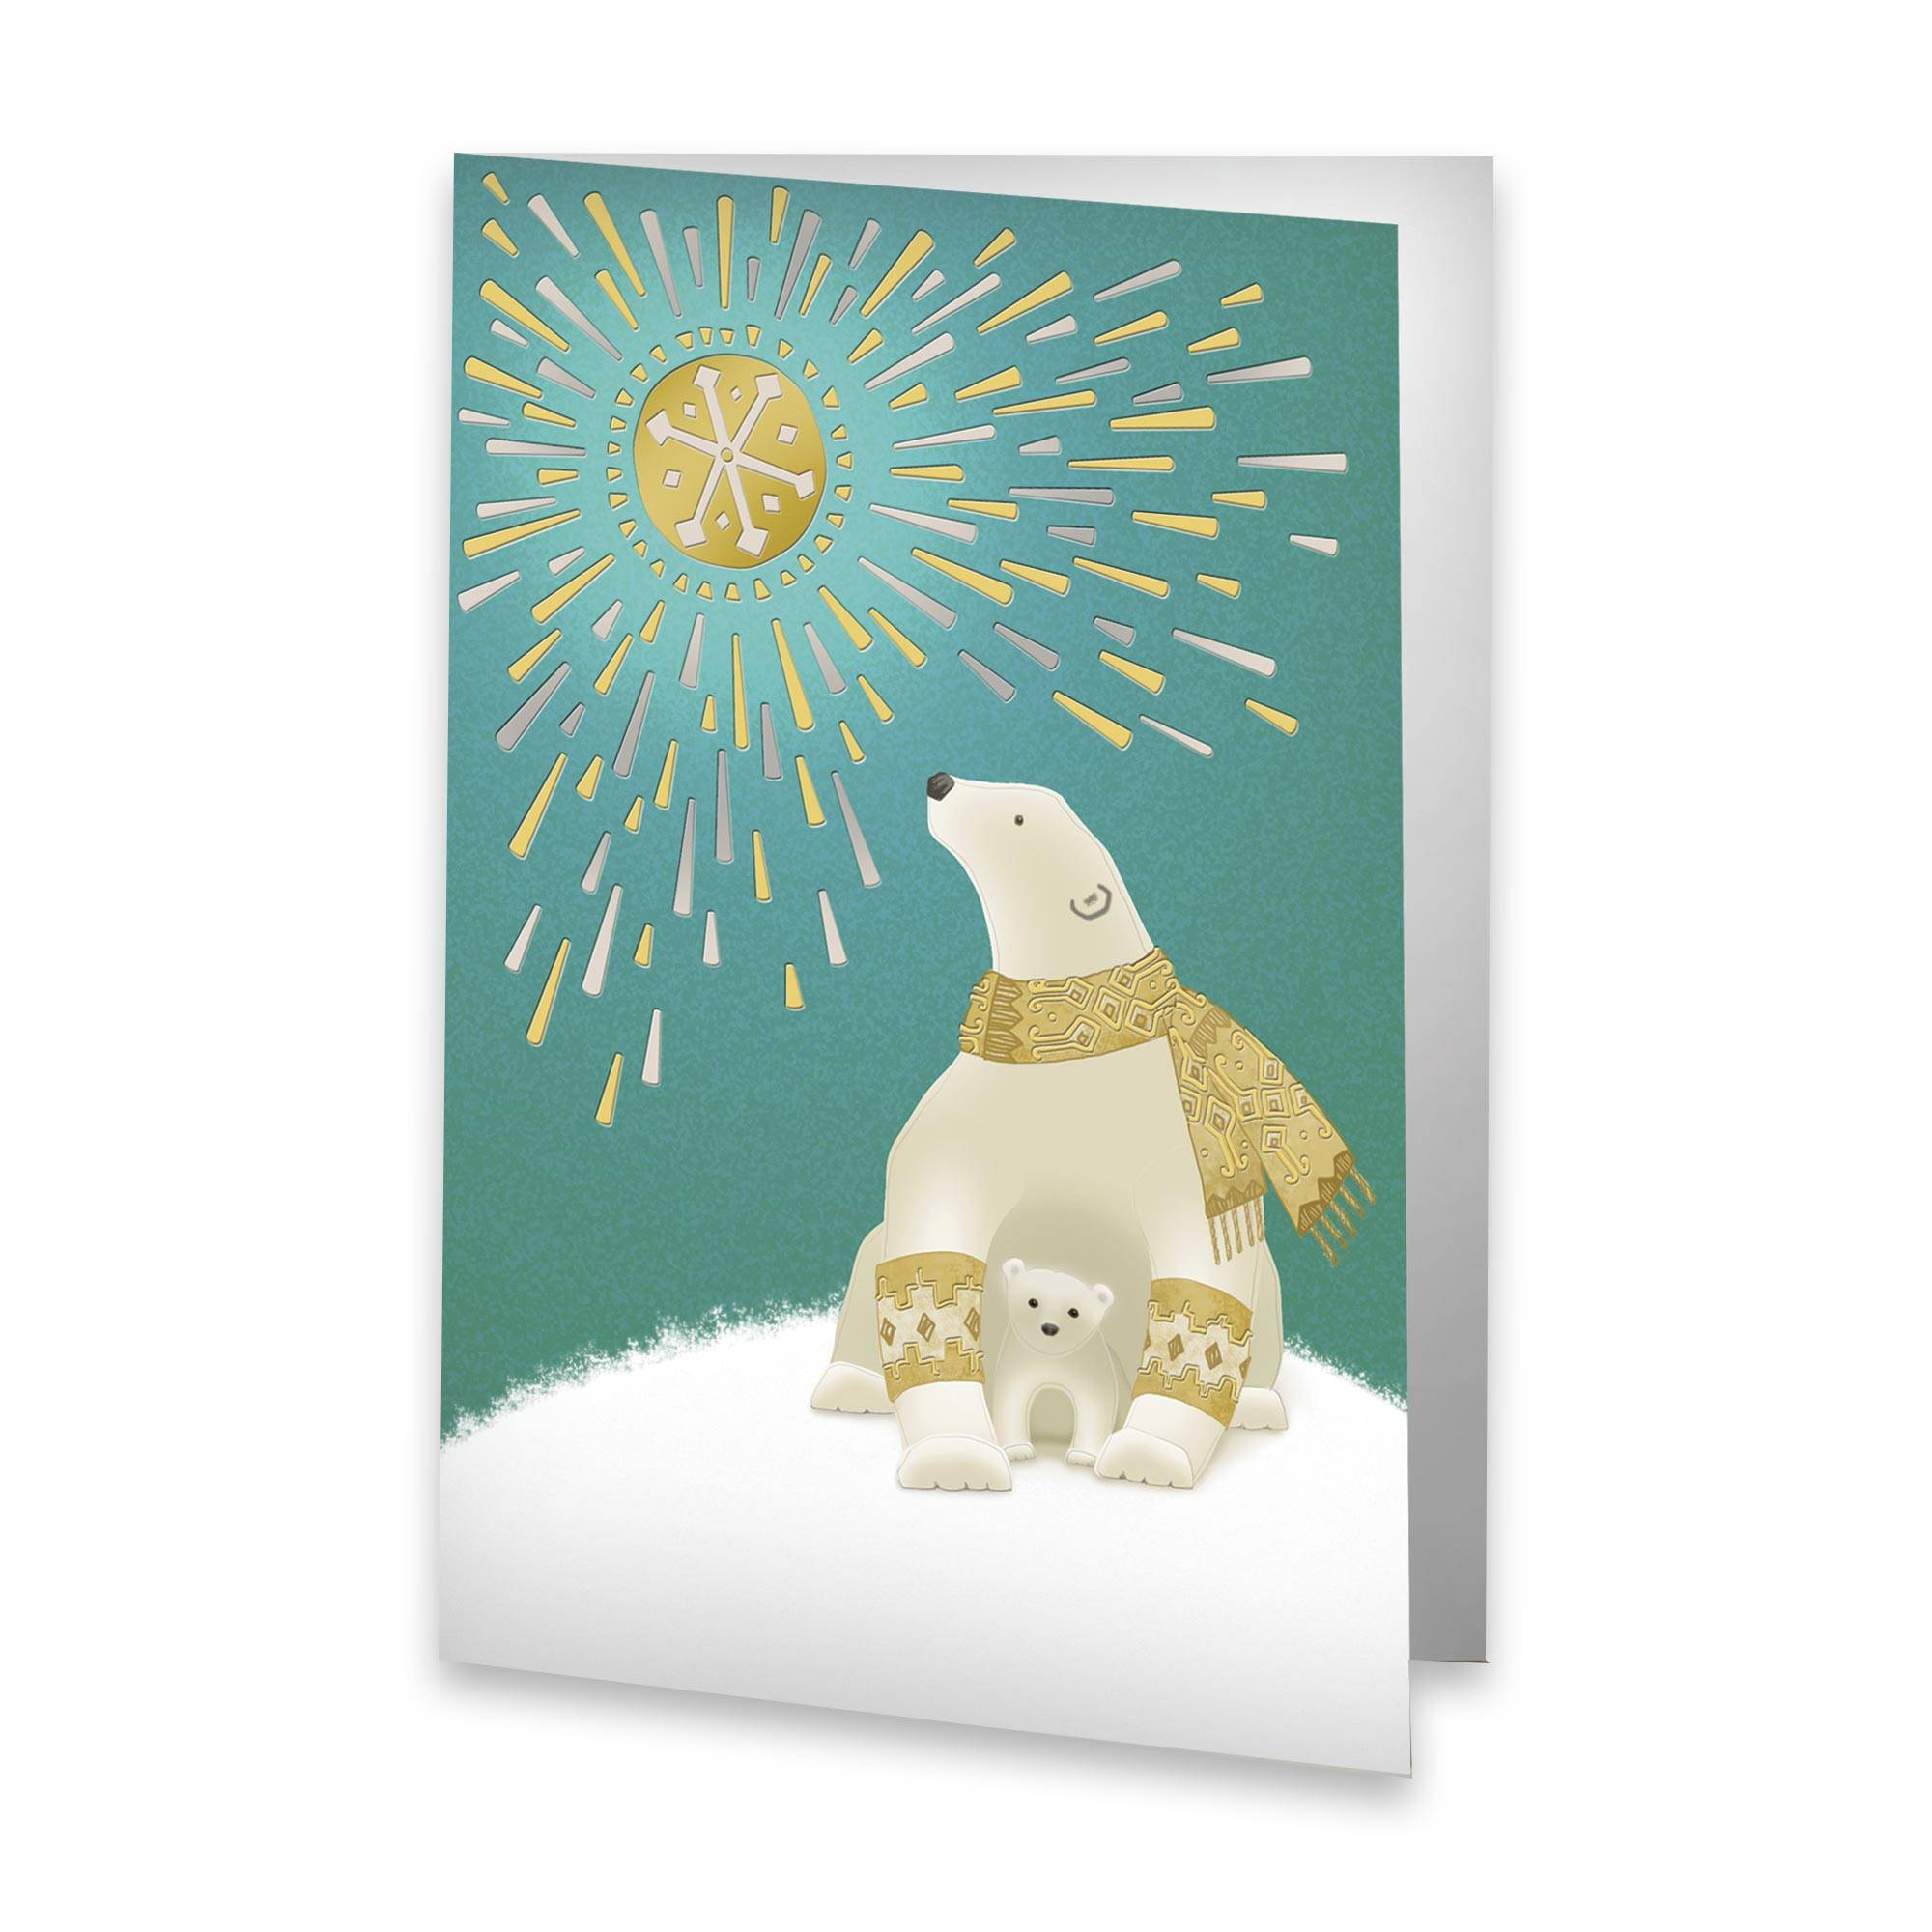 Unicef market christmas greeting cards arctic sunbath unicef cards unicef holiday cards boxed set m4hsunfo